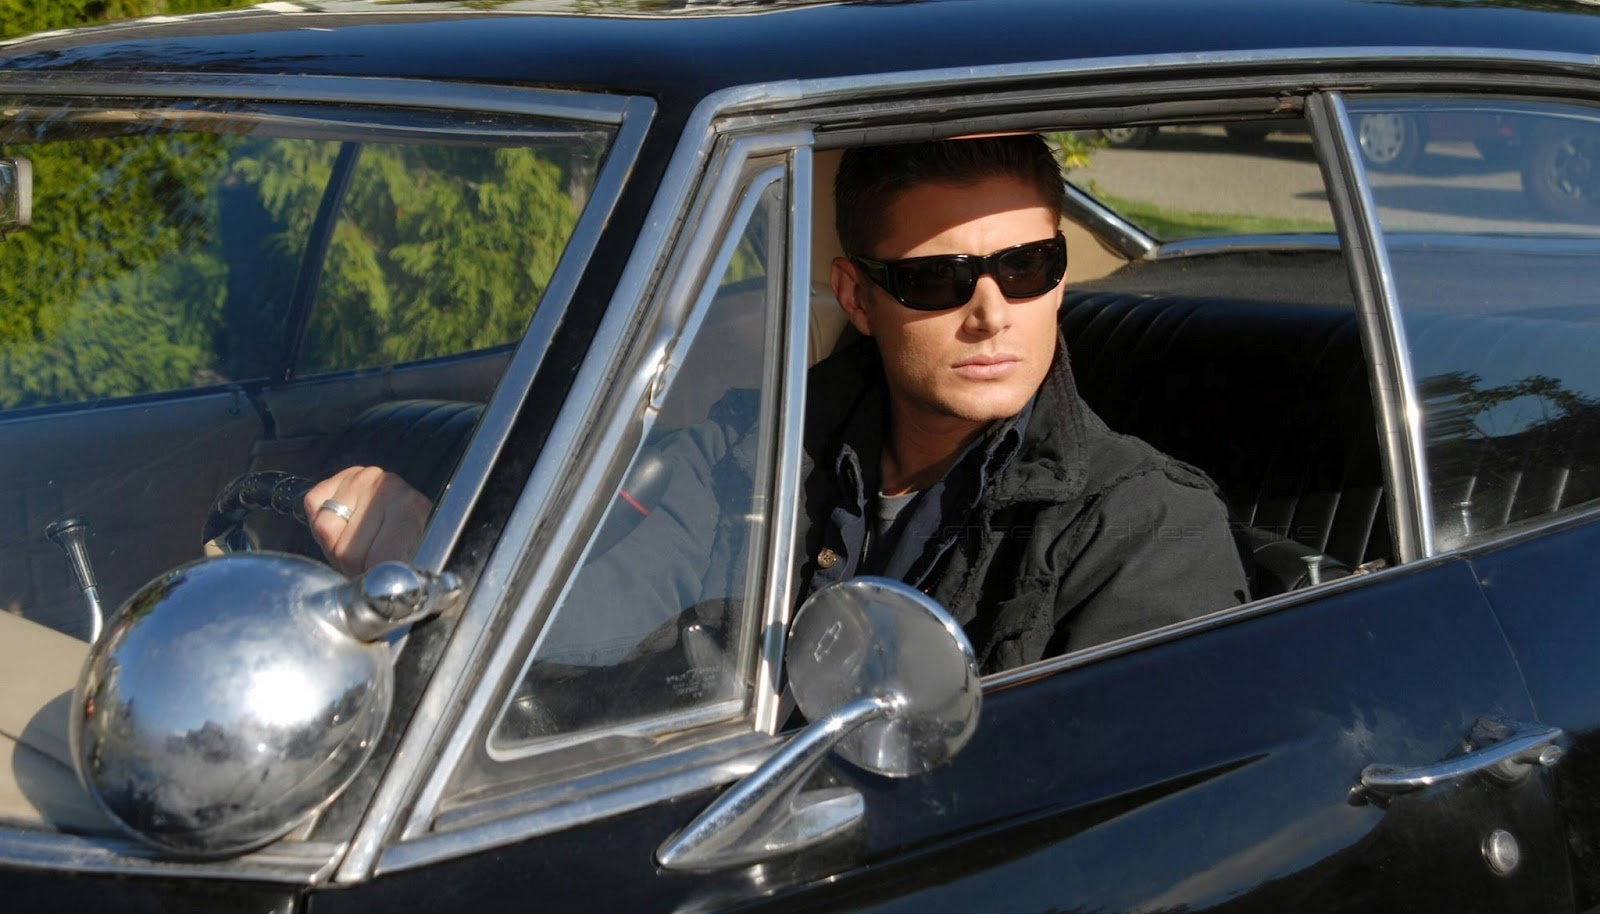 Operation awesome your character could use an impala - Supernatural car pics ...